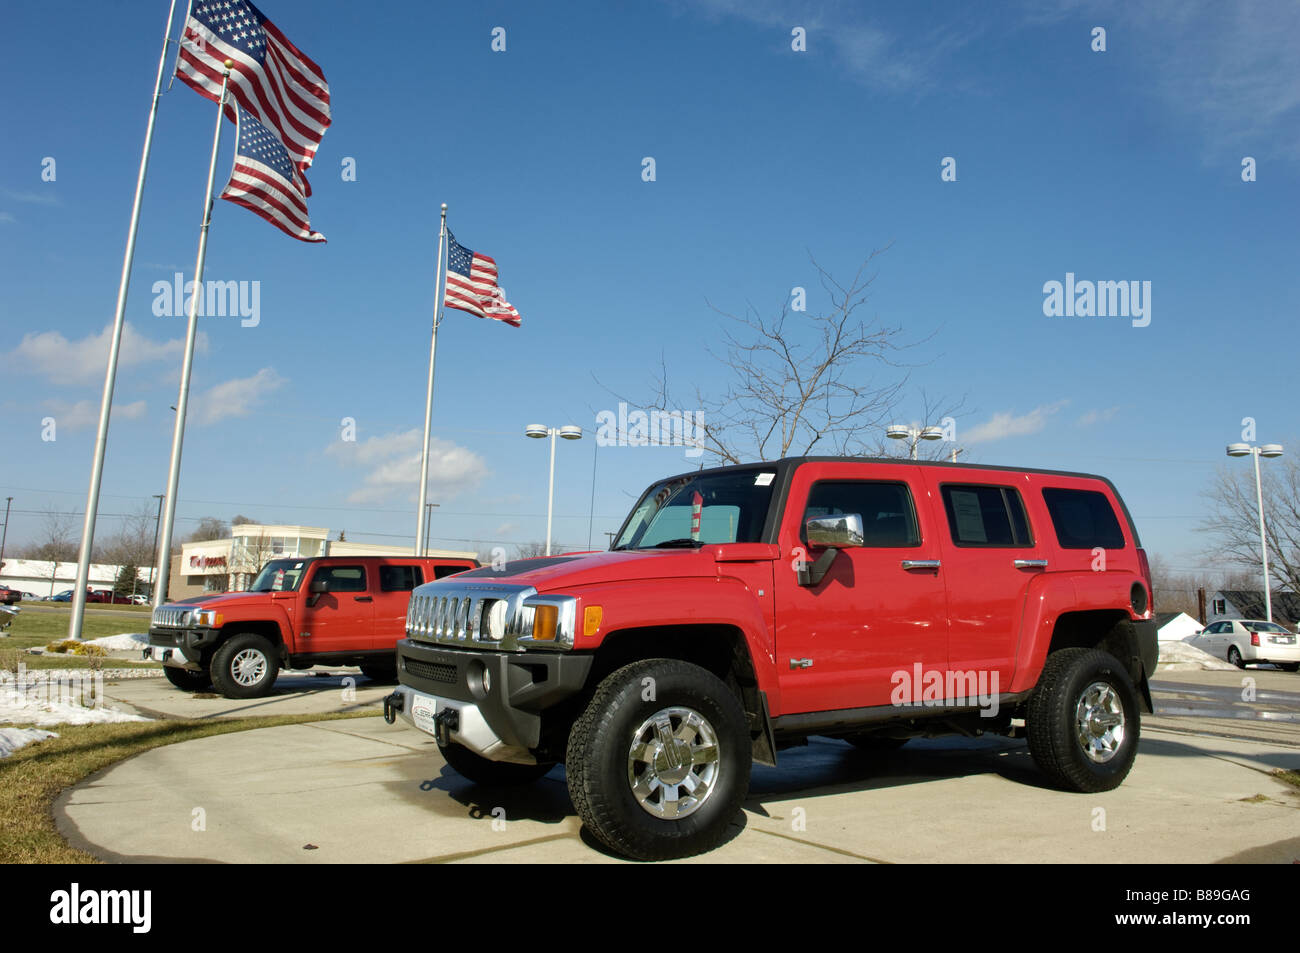 Hummer H3 Stock Photos & Hummer H3 Stock Images